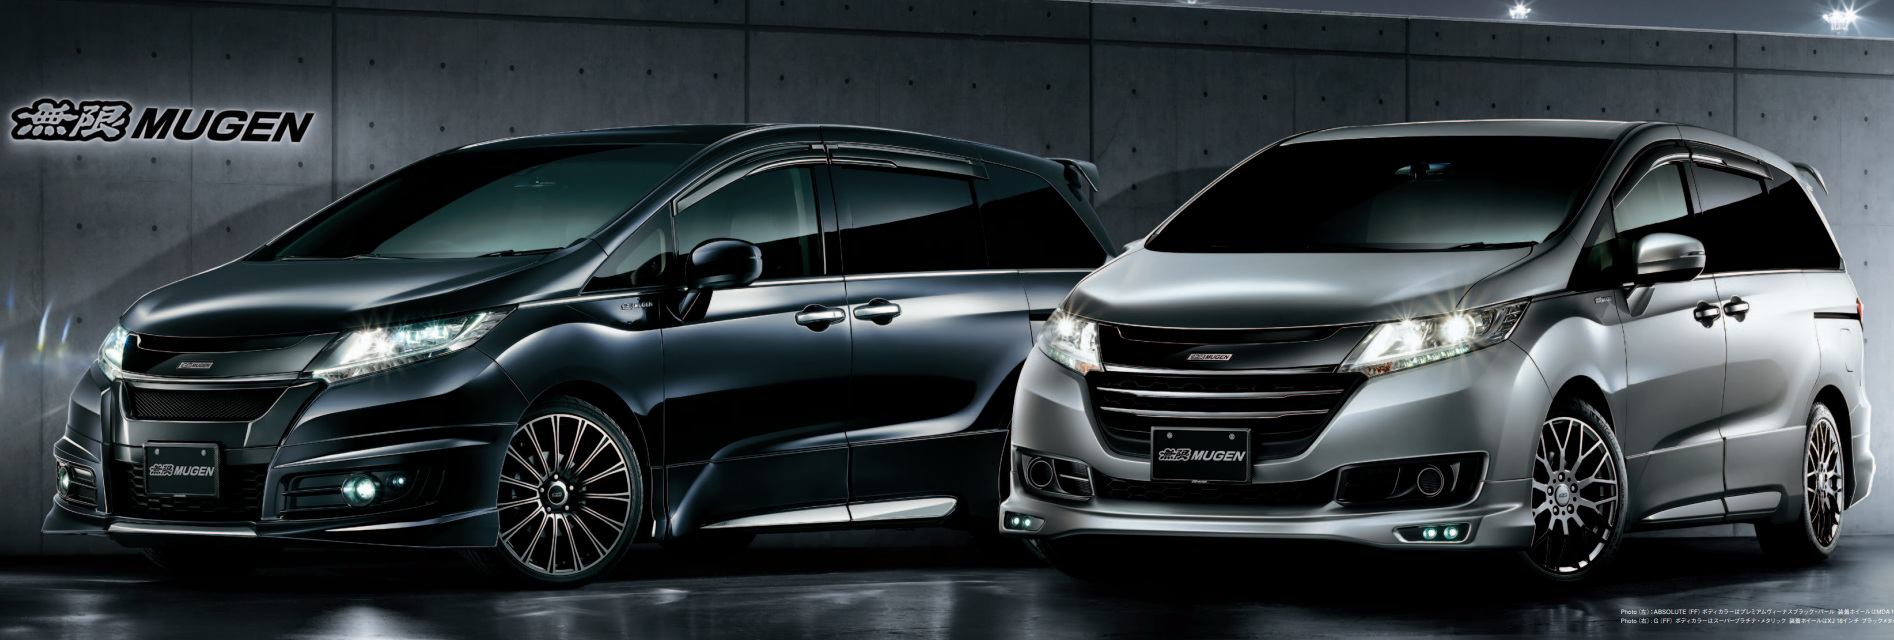 The Honda Odyssey with Mugen Kits - Black and Silver Front Angle